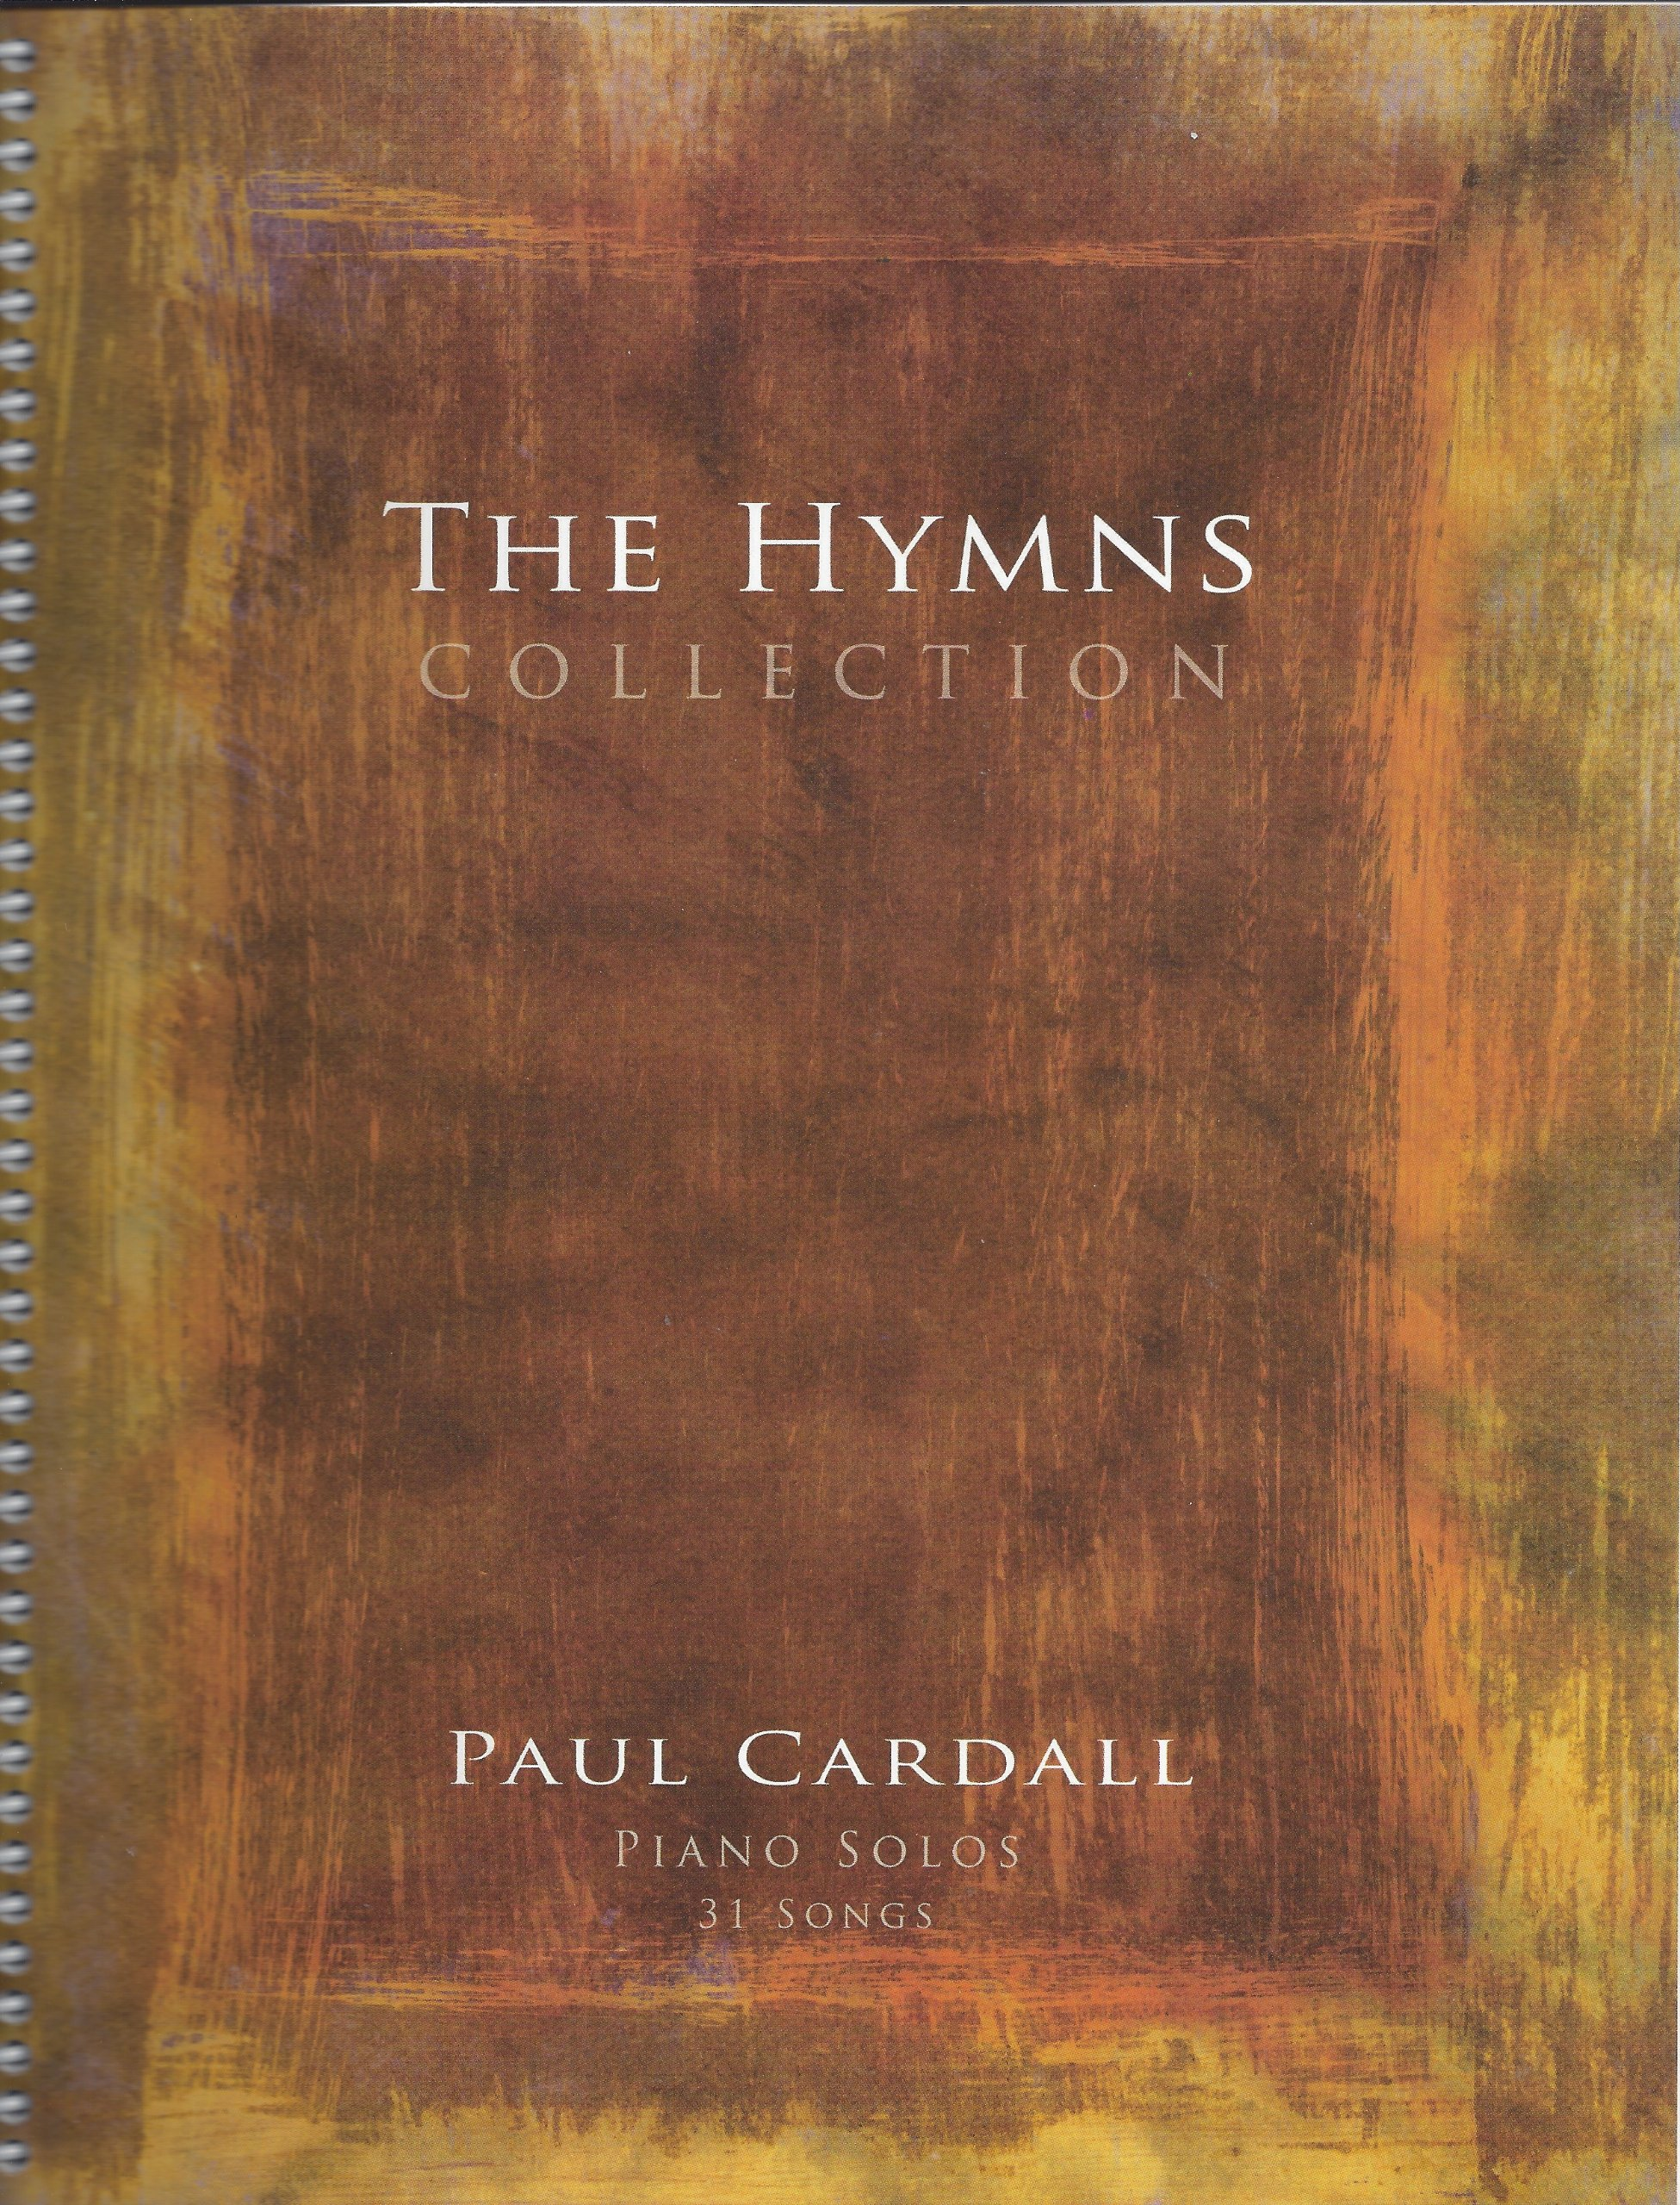 The hymns collection piano solos 31 songs sheet music paul the hymns collection piano solos 31 songs sheet music paul cardall 0650070002420 amazon books fandeluxe Images